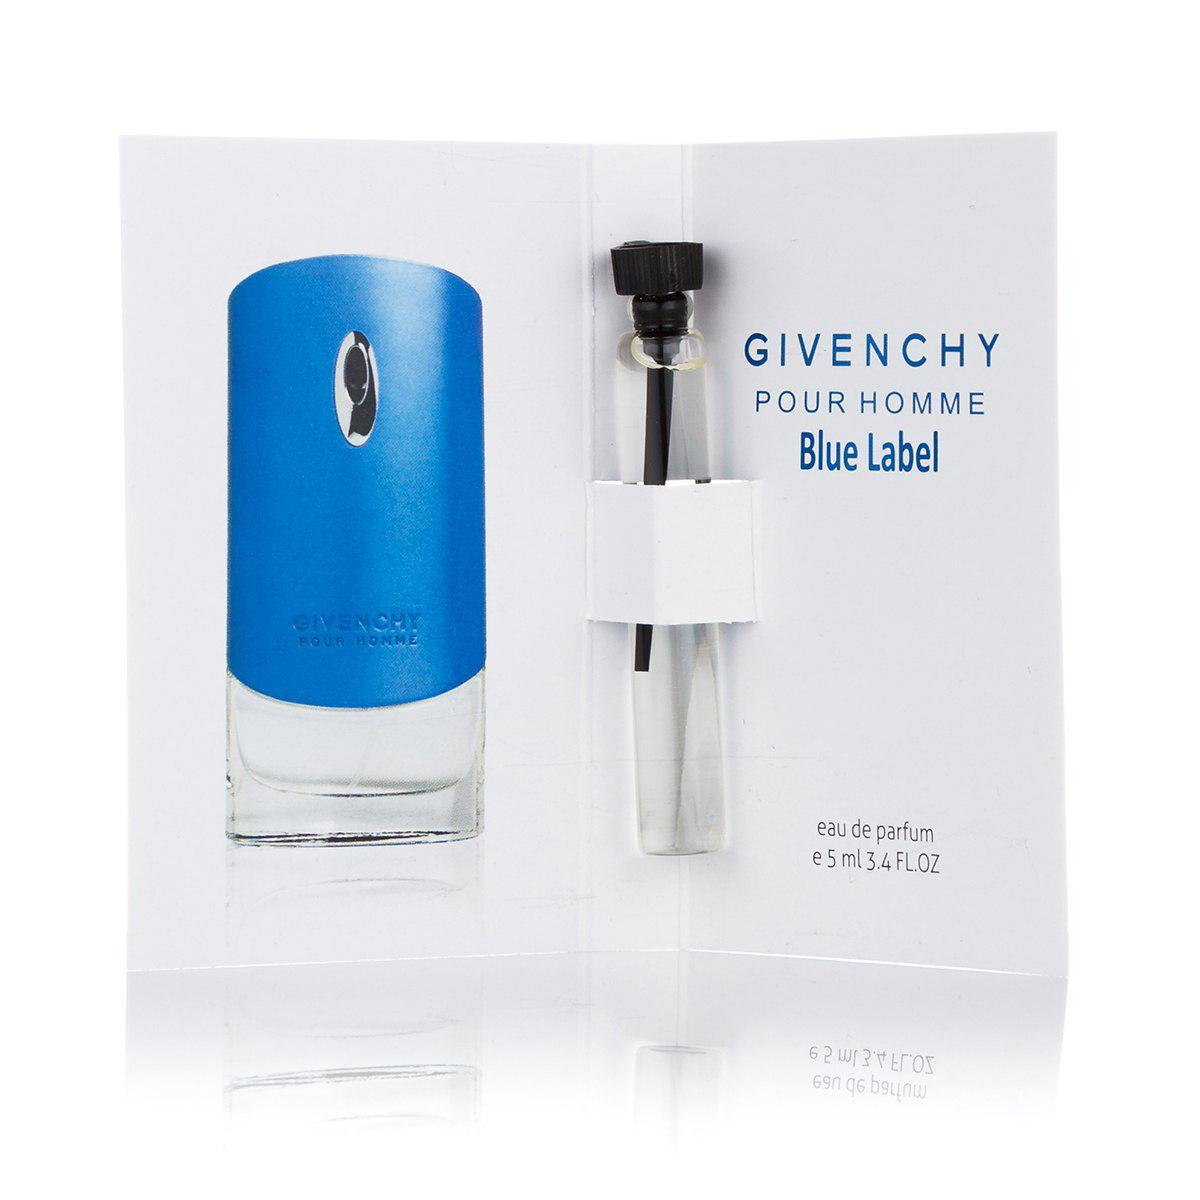 Givenchy Blue Label Pour Homme (м) 5 ml